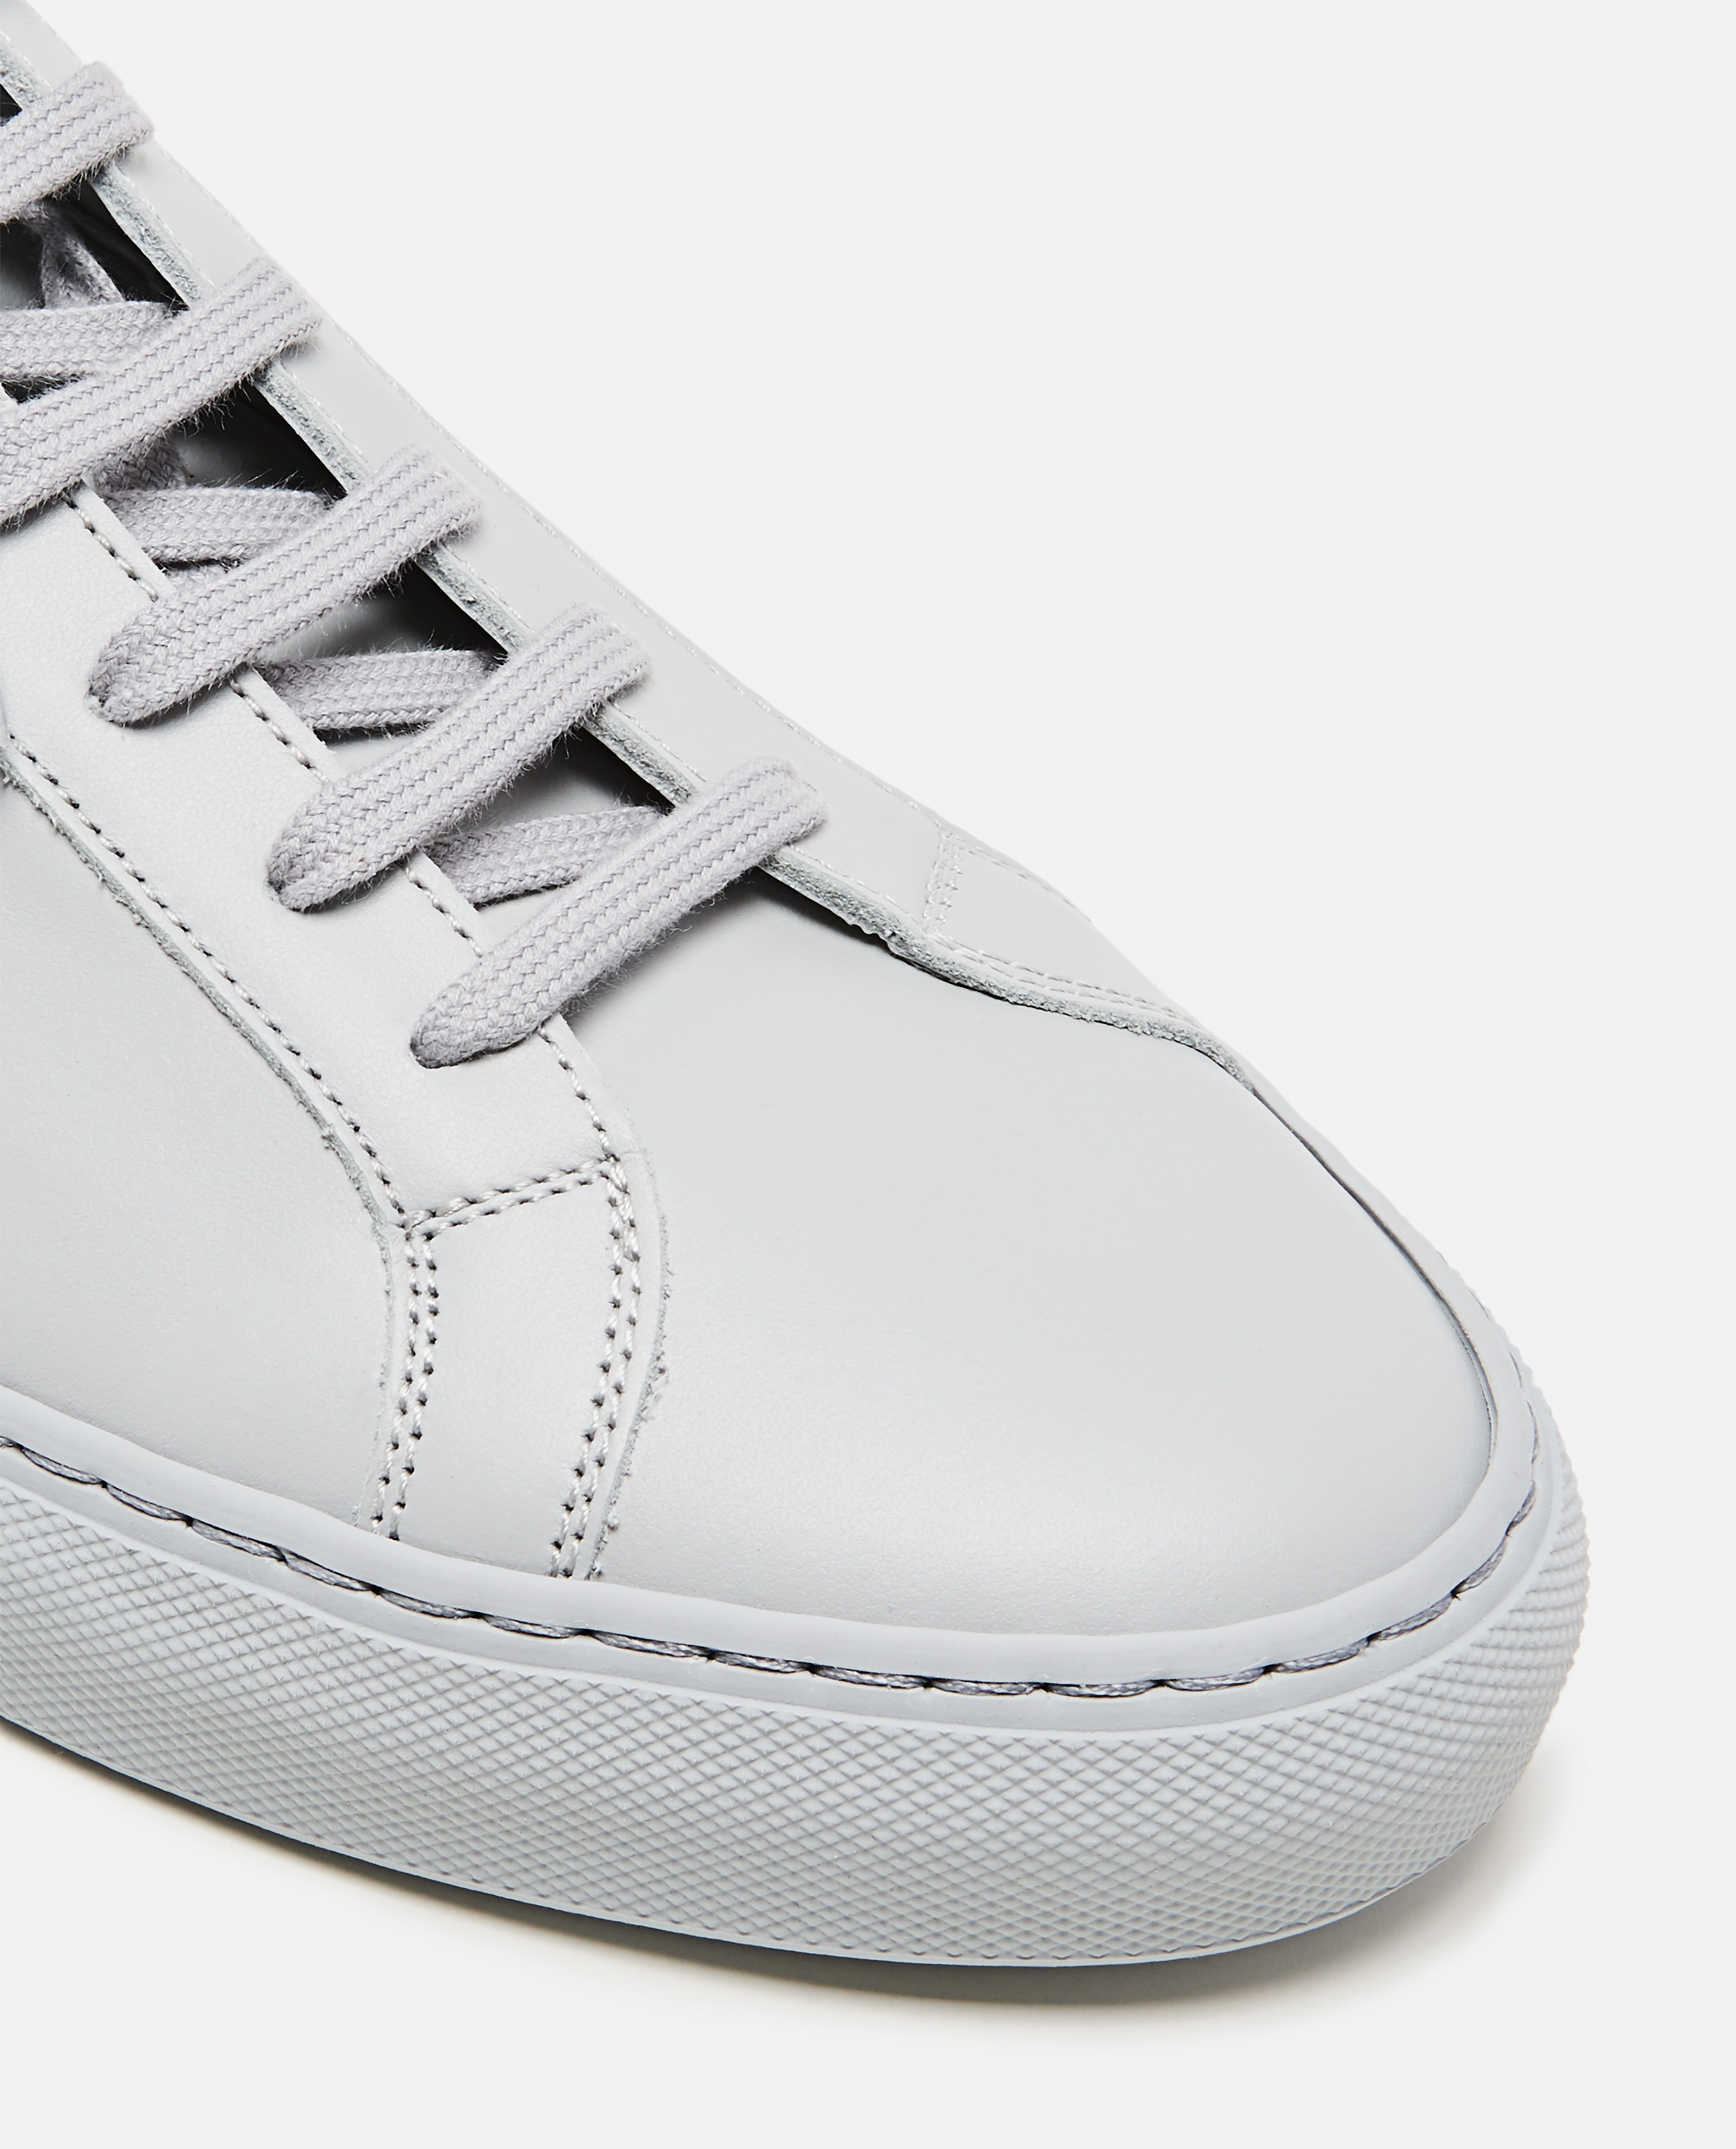 Sneakers Achilles Low in pelle  Uomo Common Projects 000016090044802 4